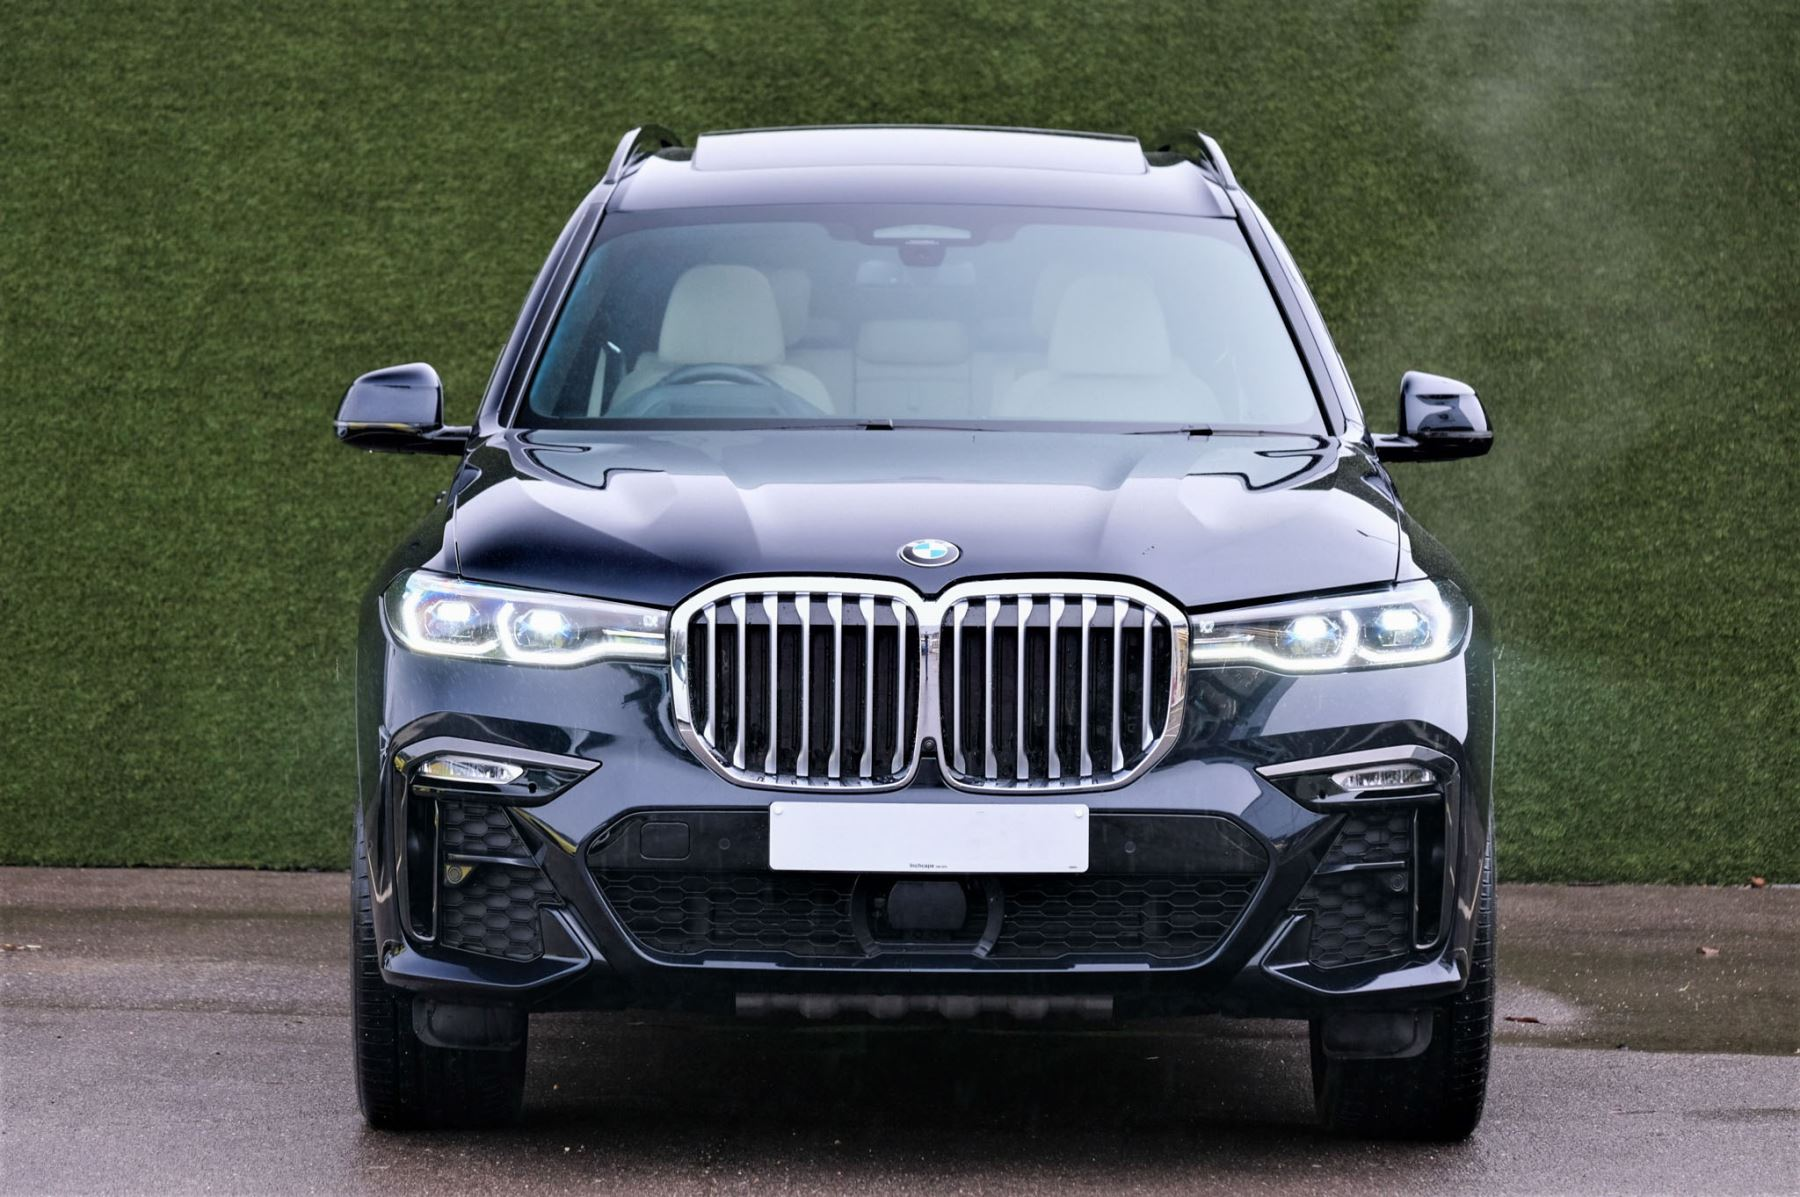 BMW X7 xDrive40i M Sport 5dr Step - Head up Display - M Sport exhaust system image 2